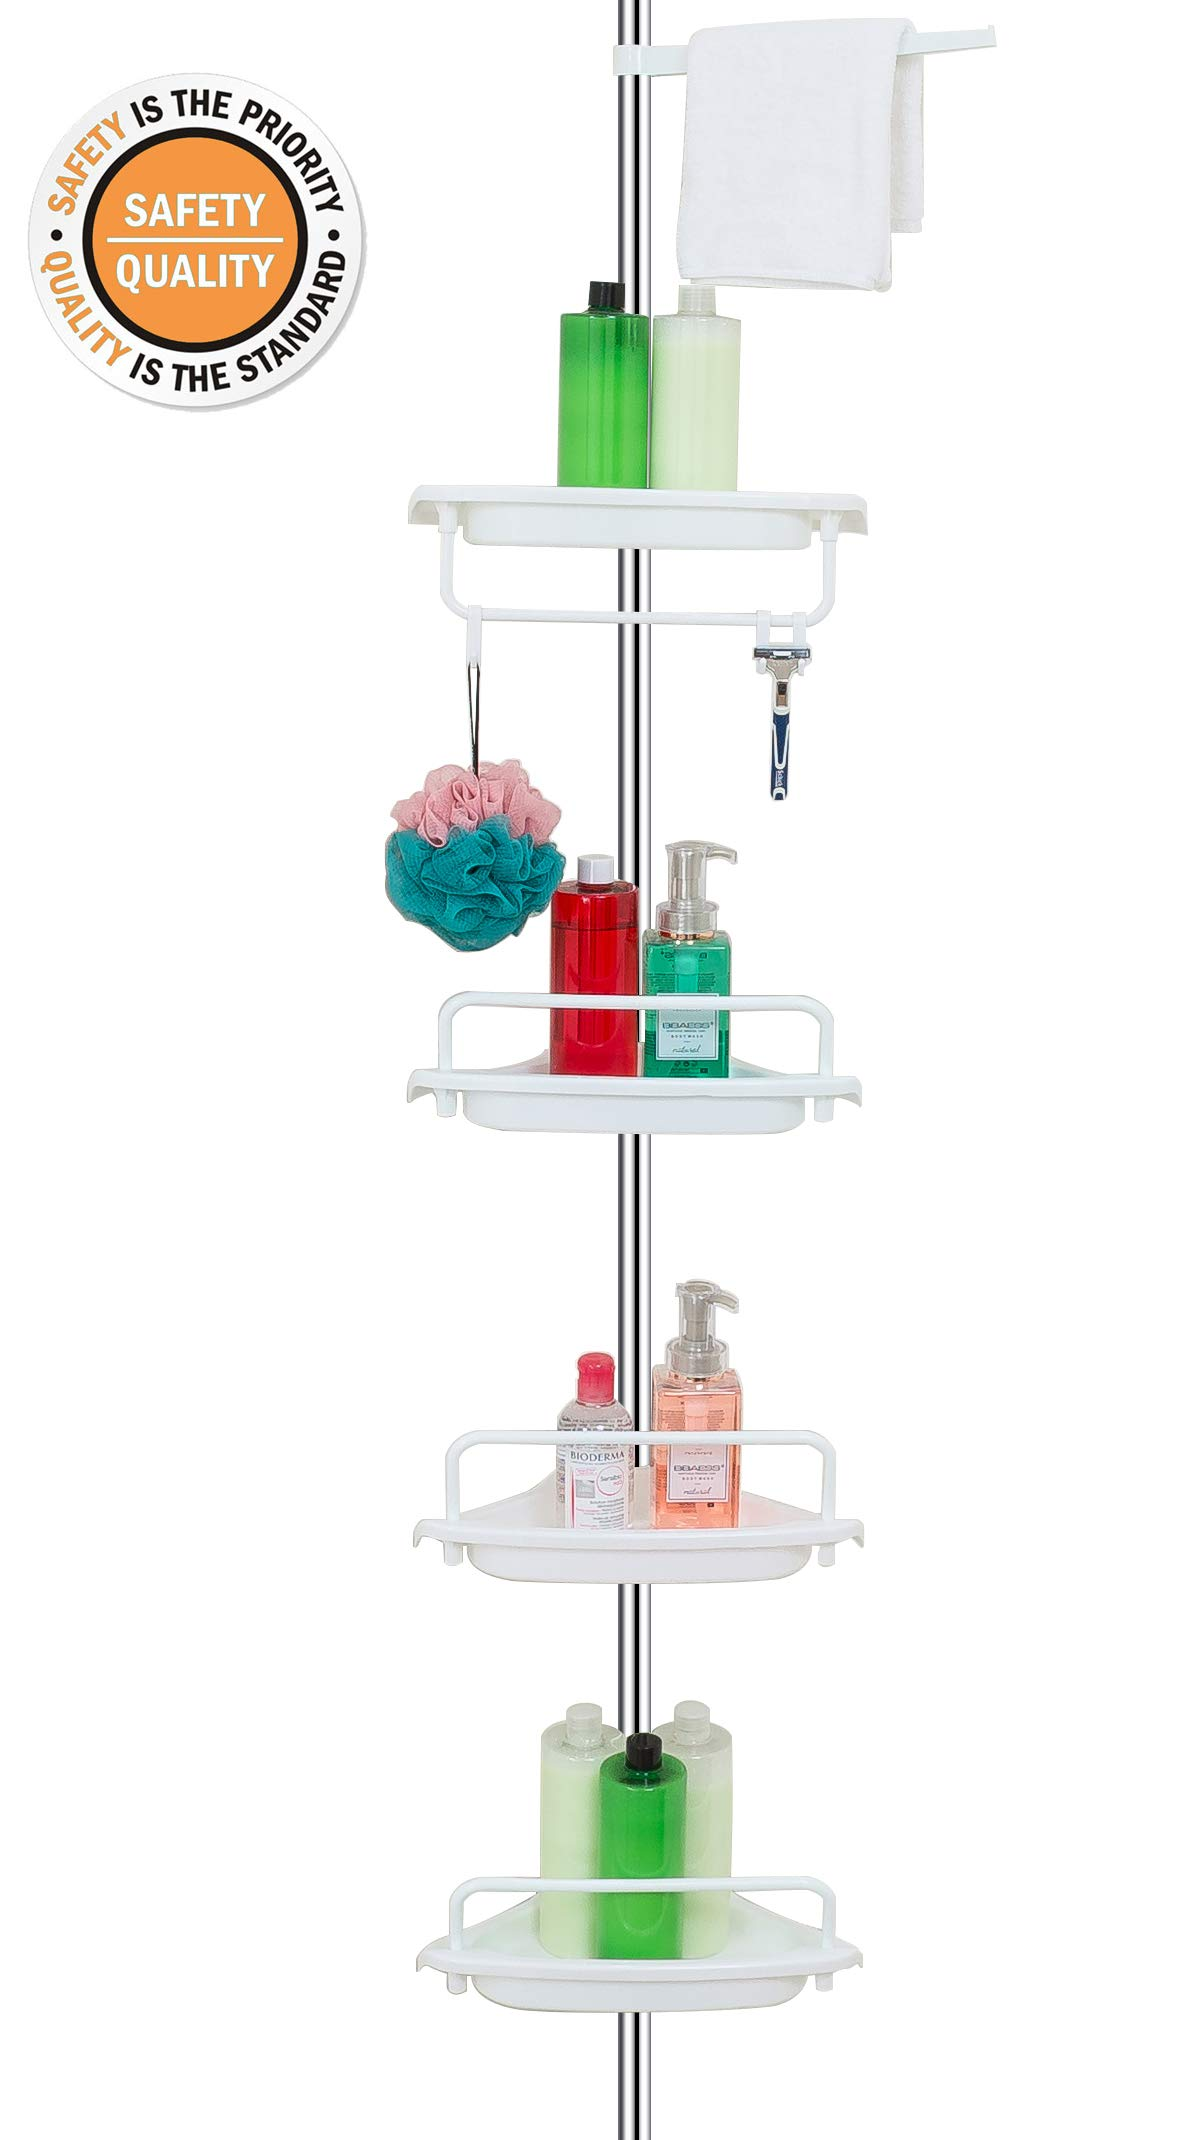 ALLZONE Constant Tension Corner Shower Caddy, Stainless Steel Pole, Rustproof, Strong and Sturdy, White,4.5-9FT